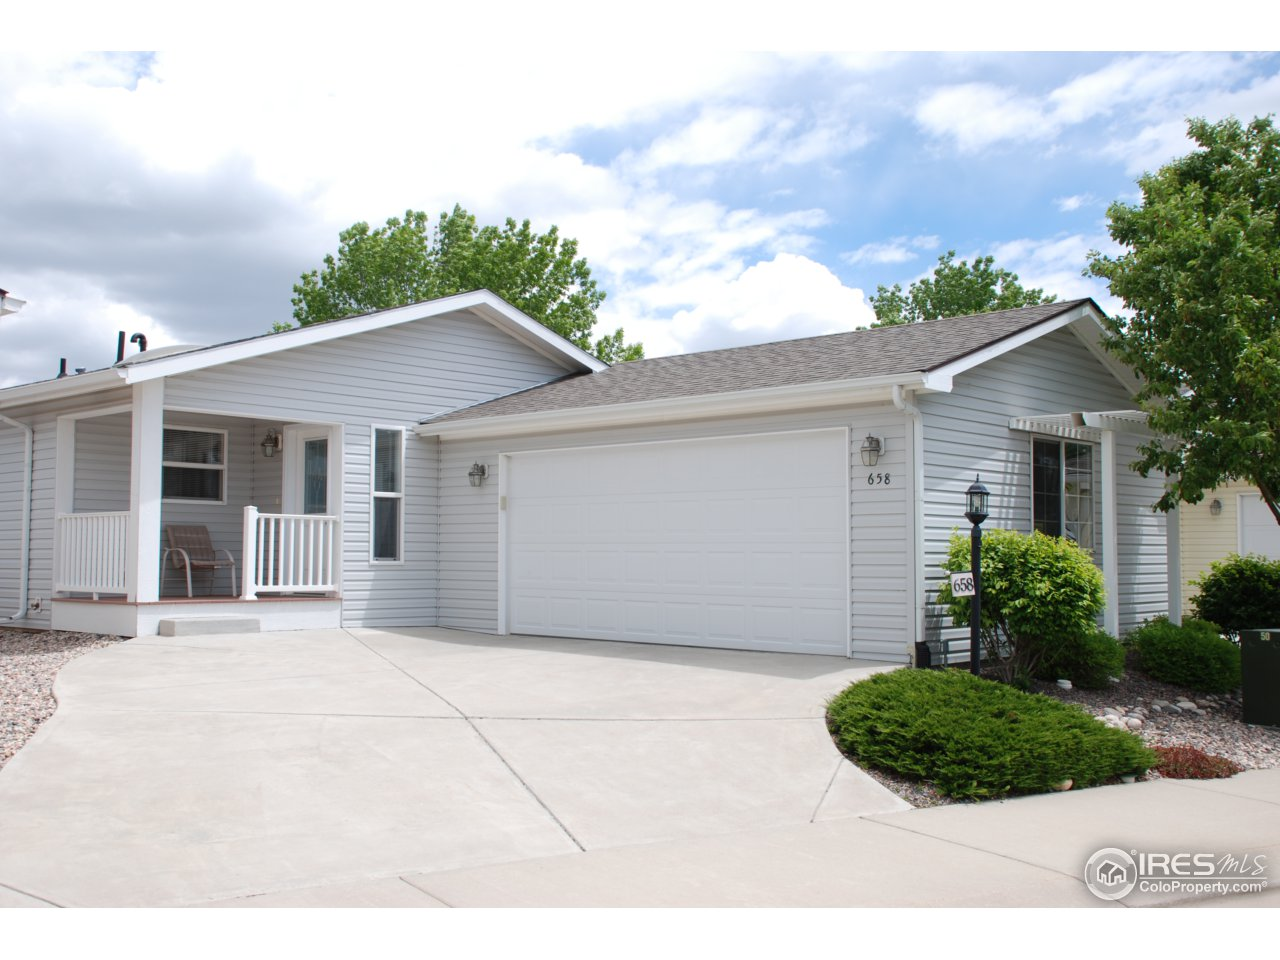 658 Brandt Cir, Fort Collins, CO 80524